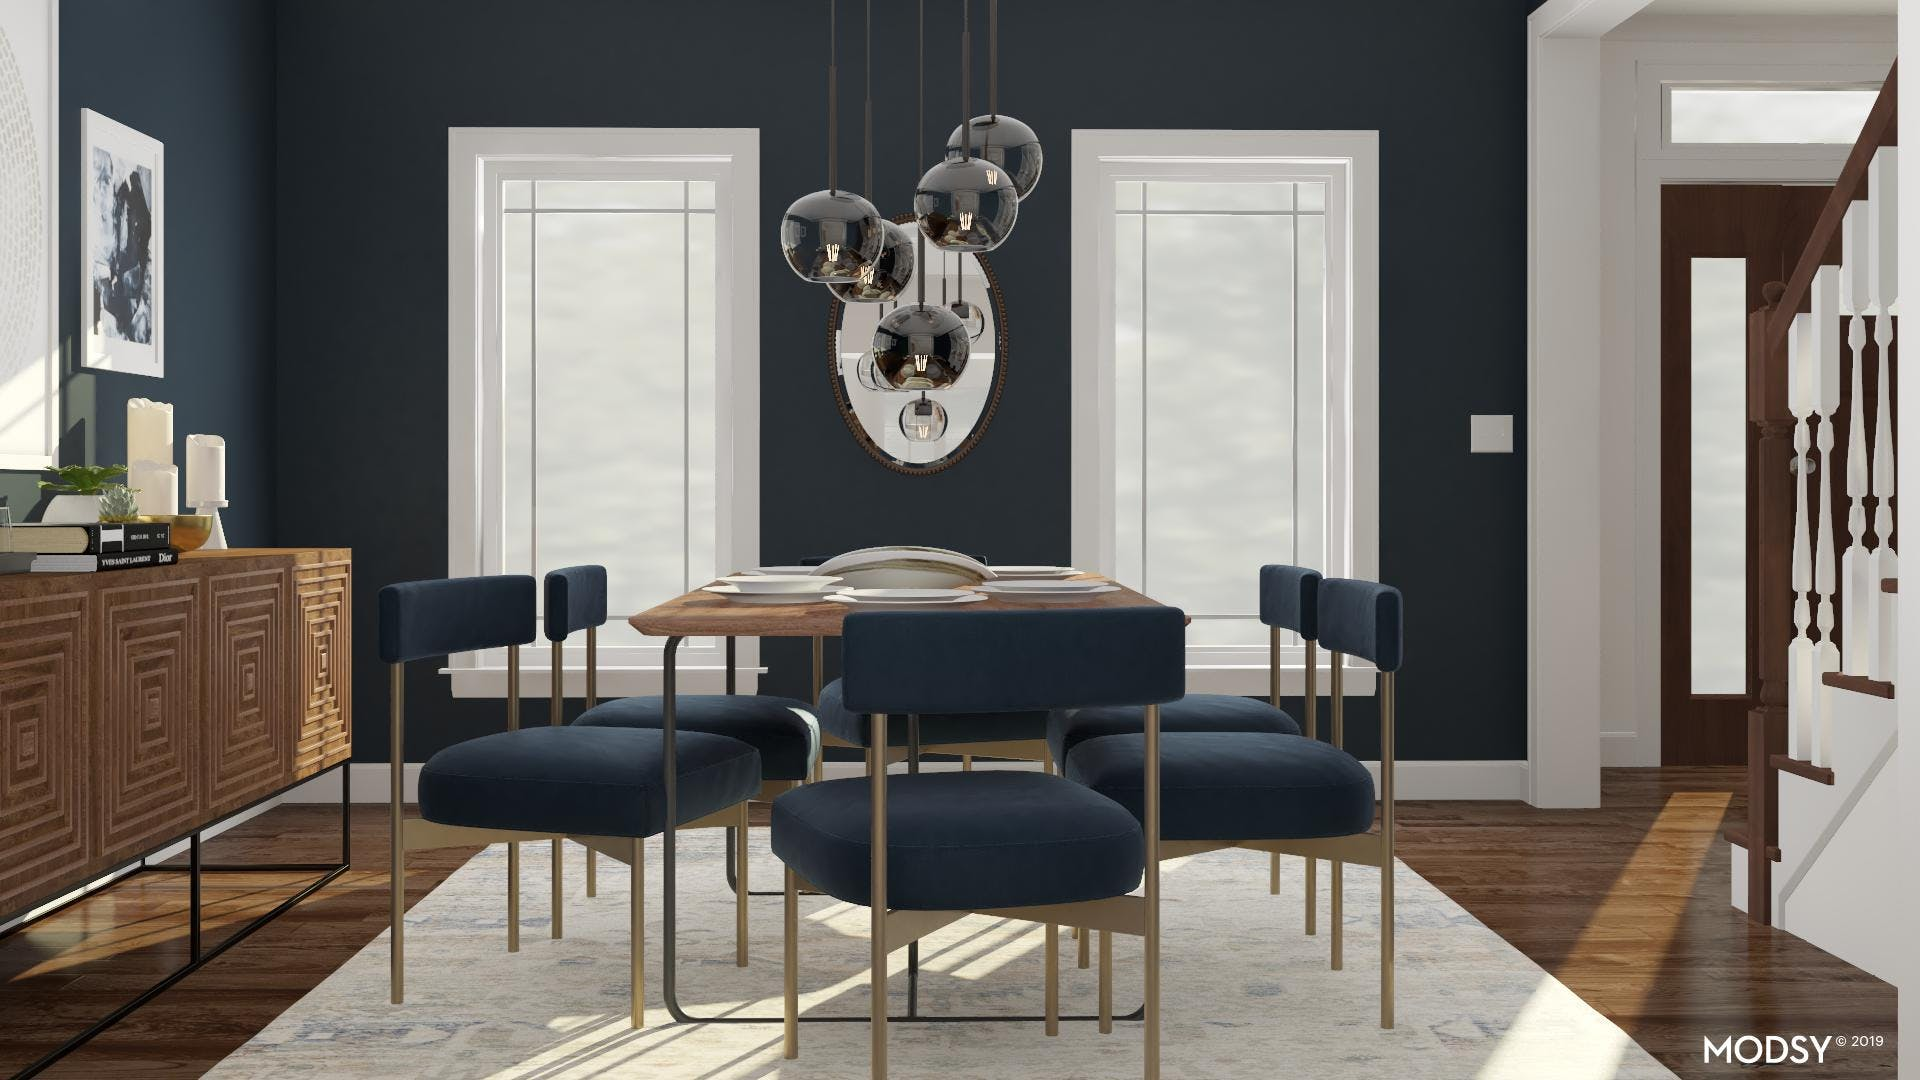 An Entertainers Dream - A Mid Century Mod Dining Room